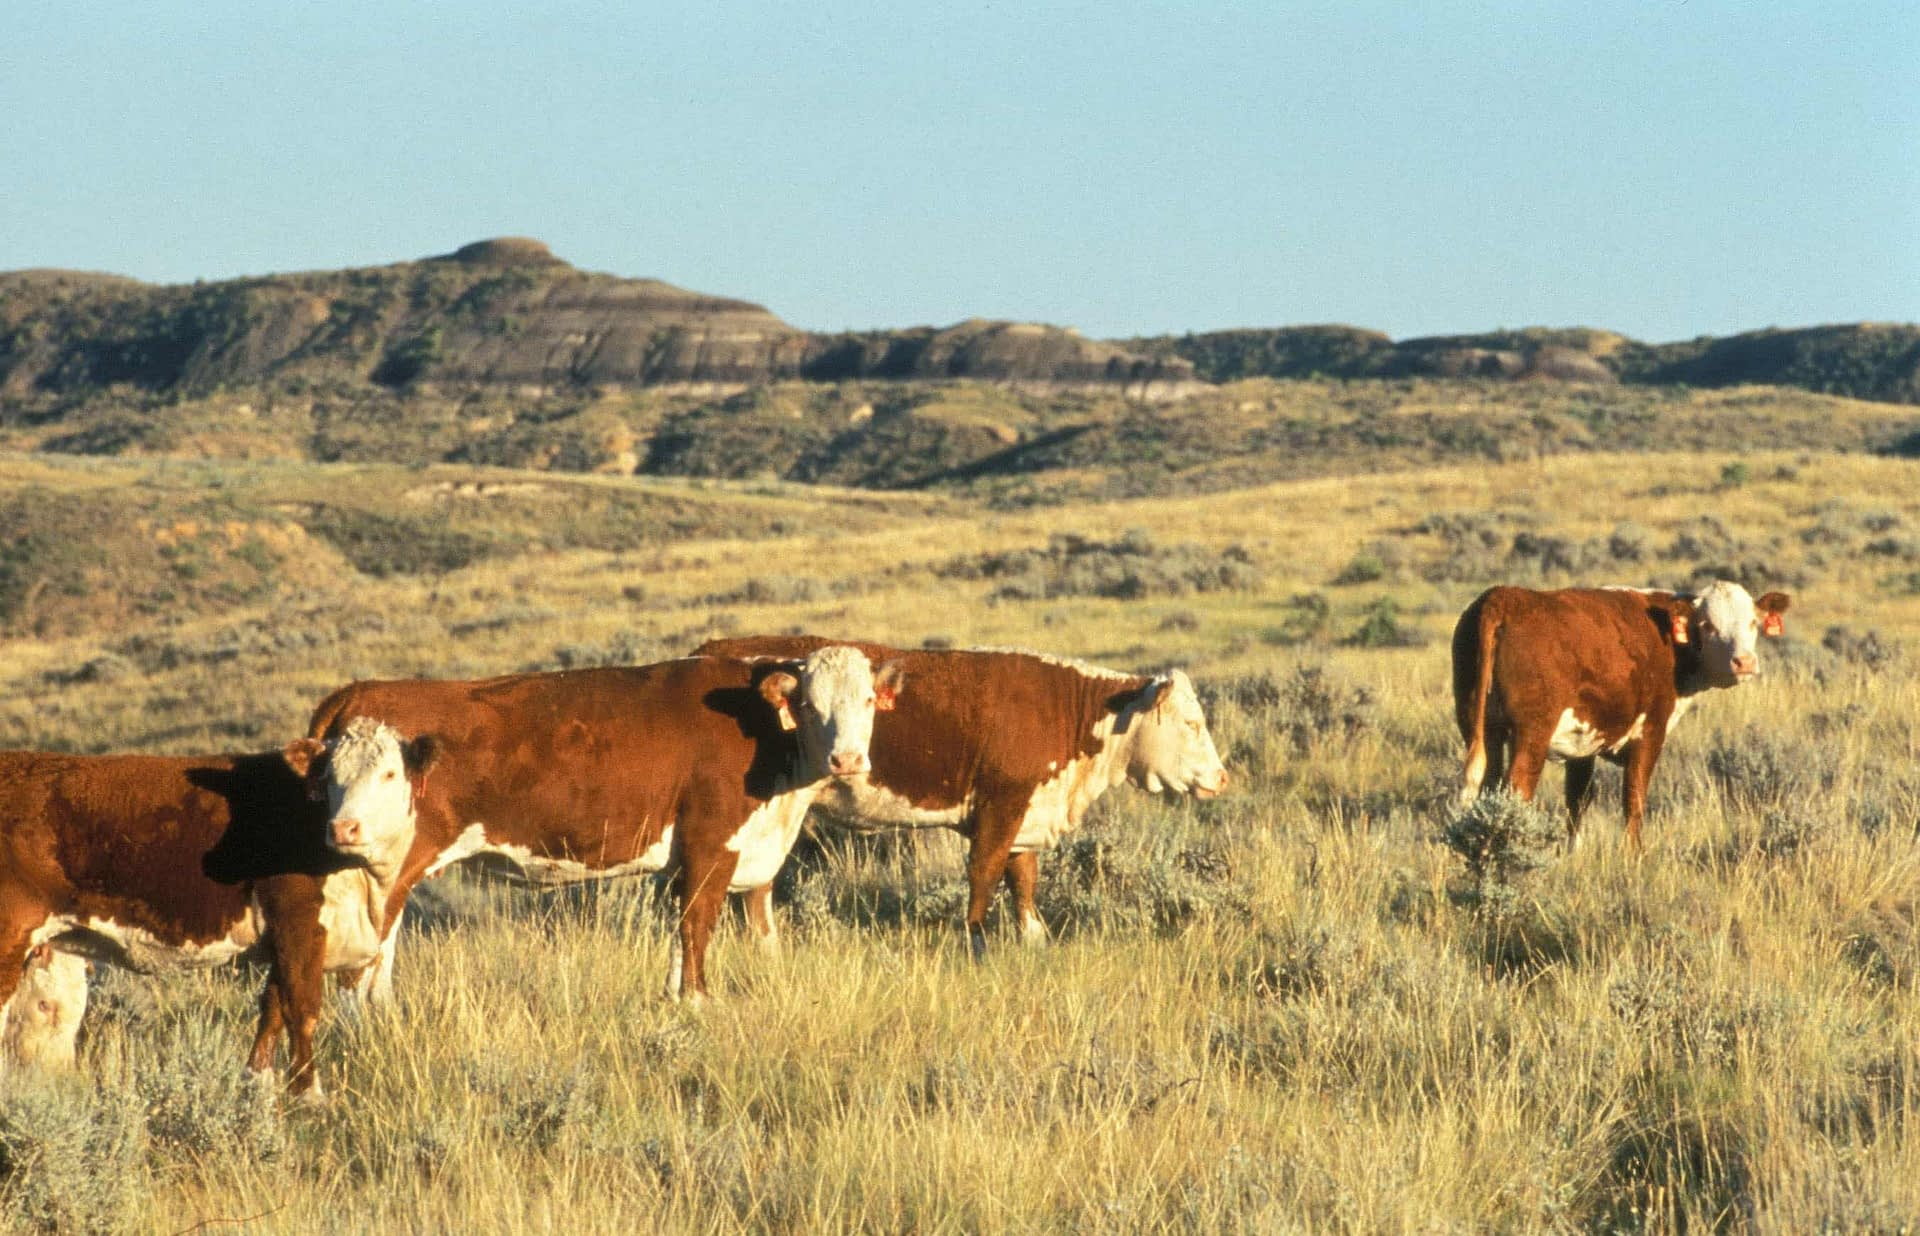 Direct emissions from cattle (enteric fermentation and manure) accounts for nearly 9% of global CO2e emissions.